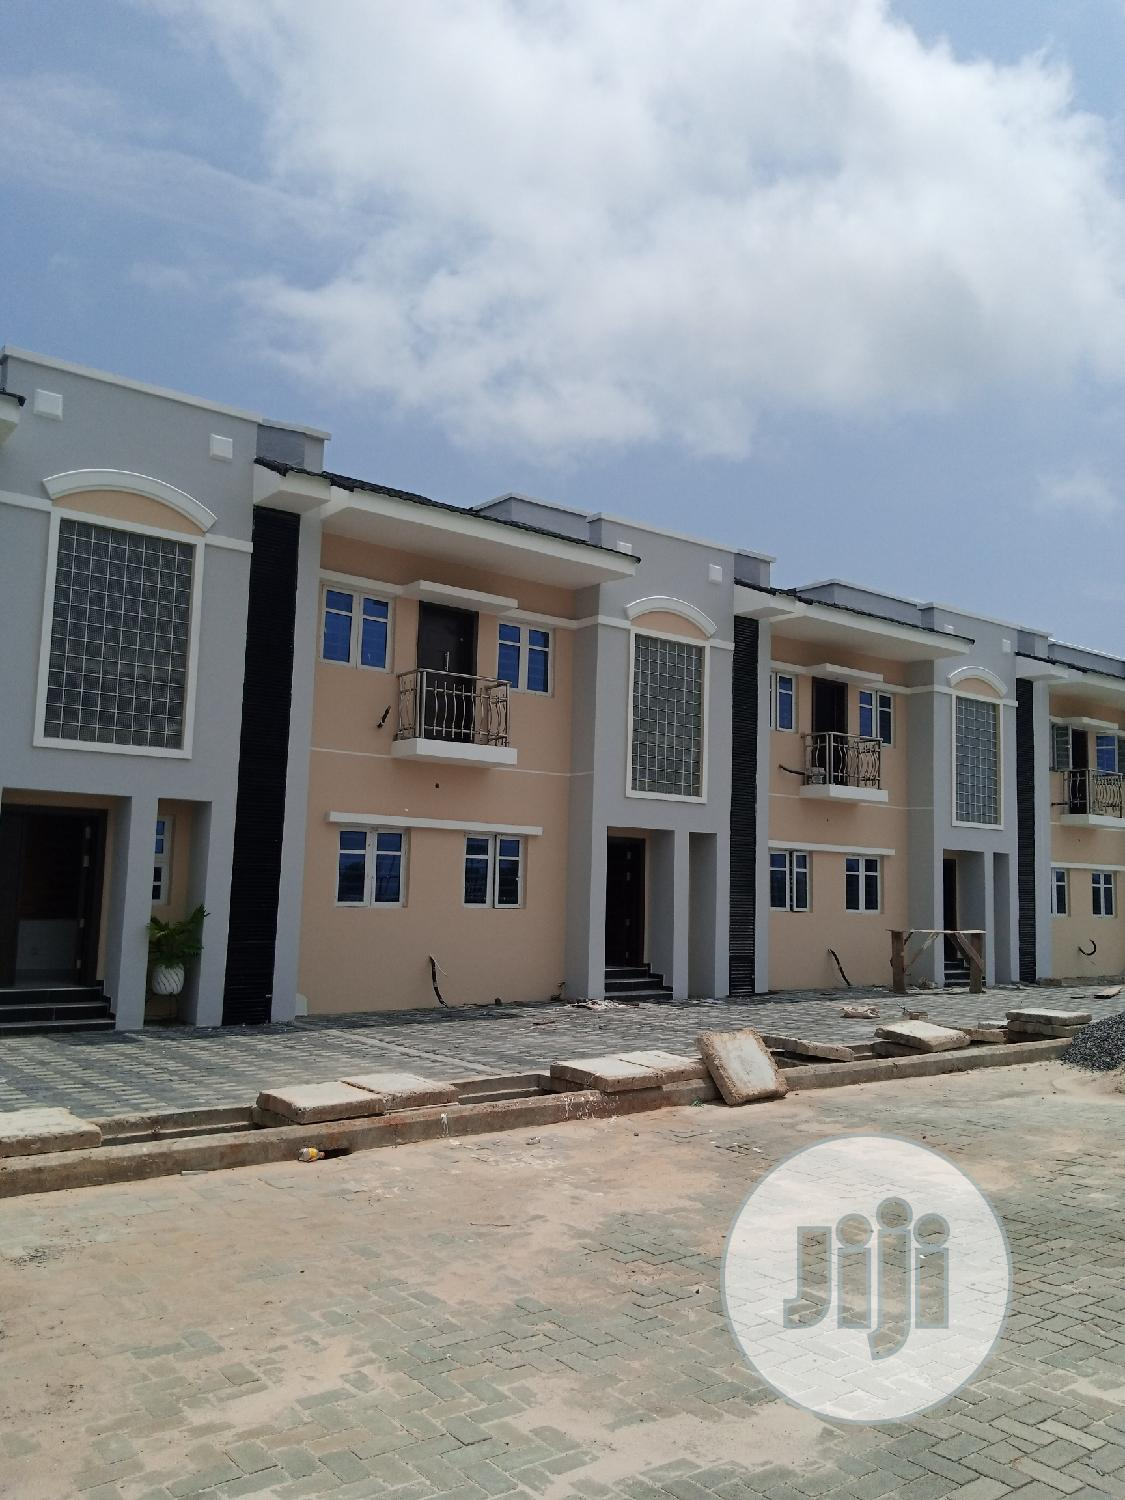 3 Bedrooms Duplex for Sale Ajah | Houses & Apartments For Sale for sale in Ajah, Lagos State, Nigeria